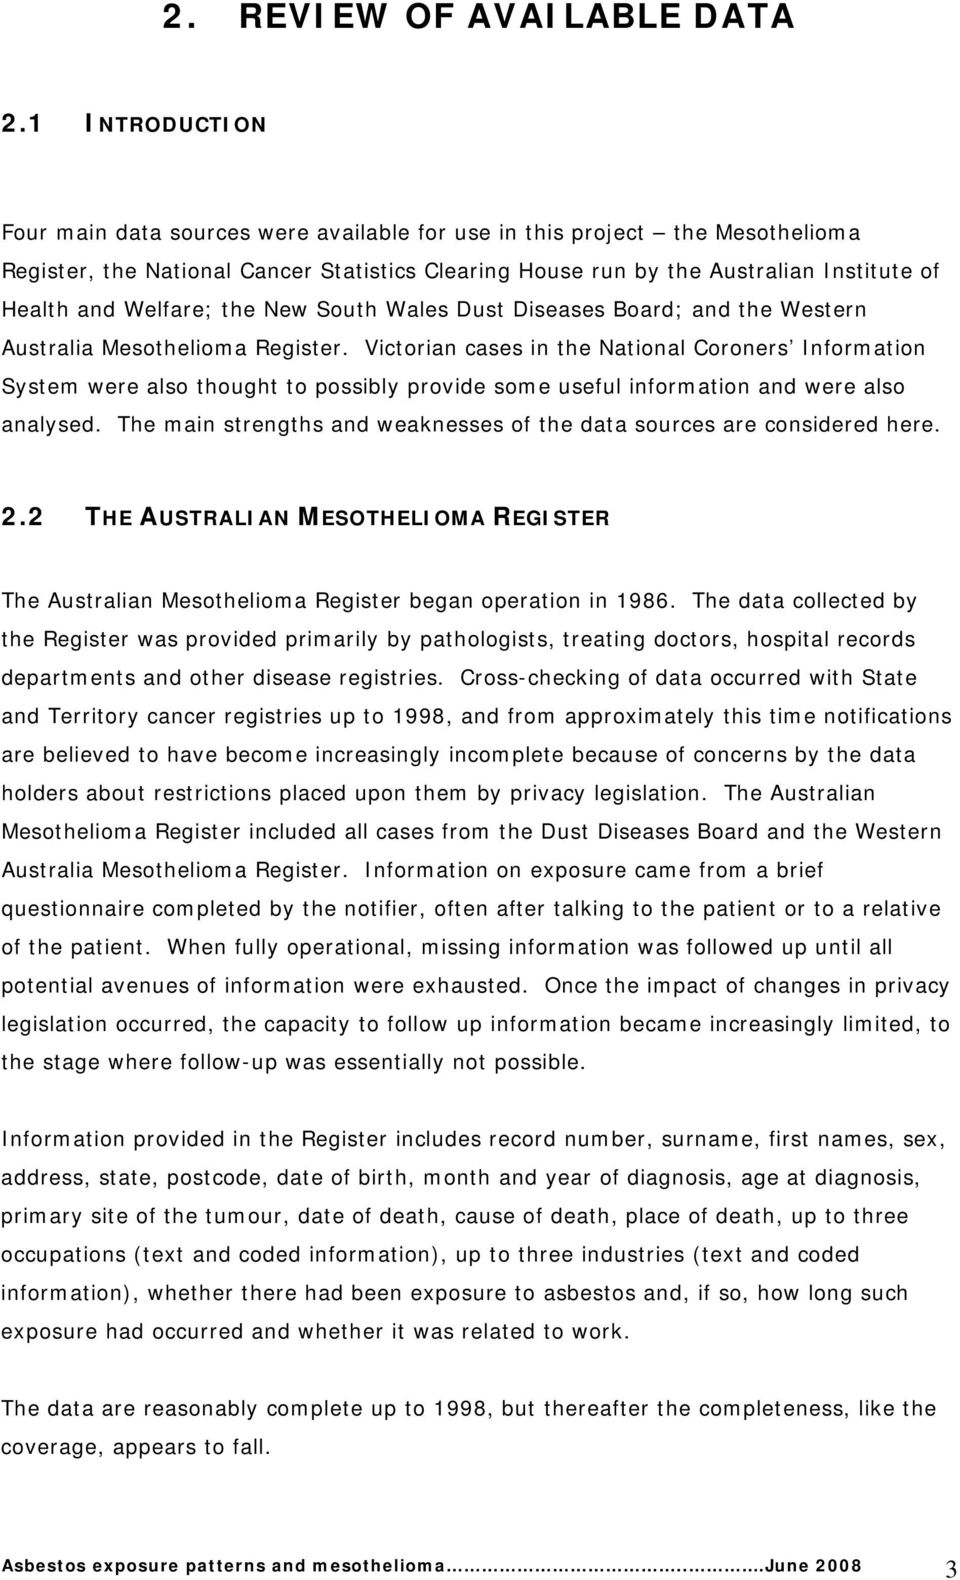 Welfare; the New South Wales Dust Diseases Board; and the Western Australia Mesothelioma Register.